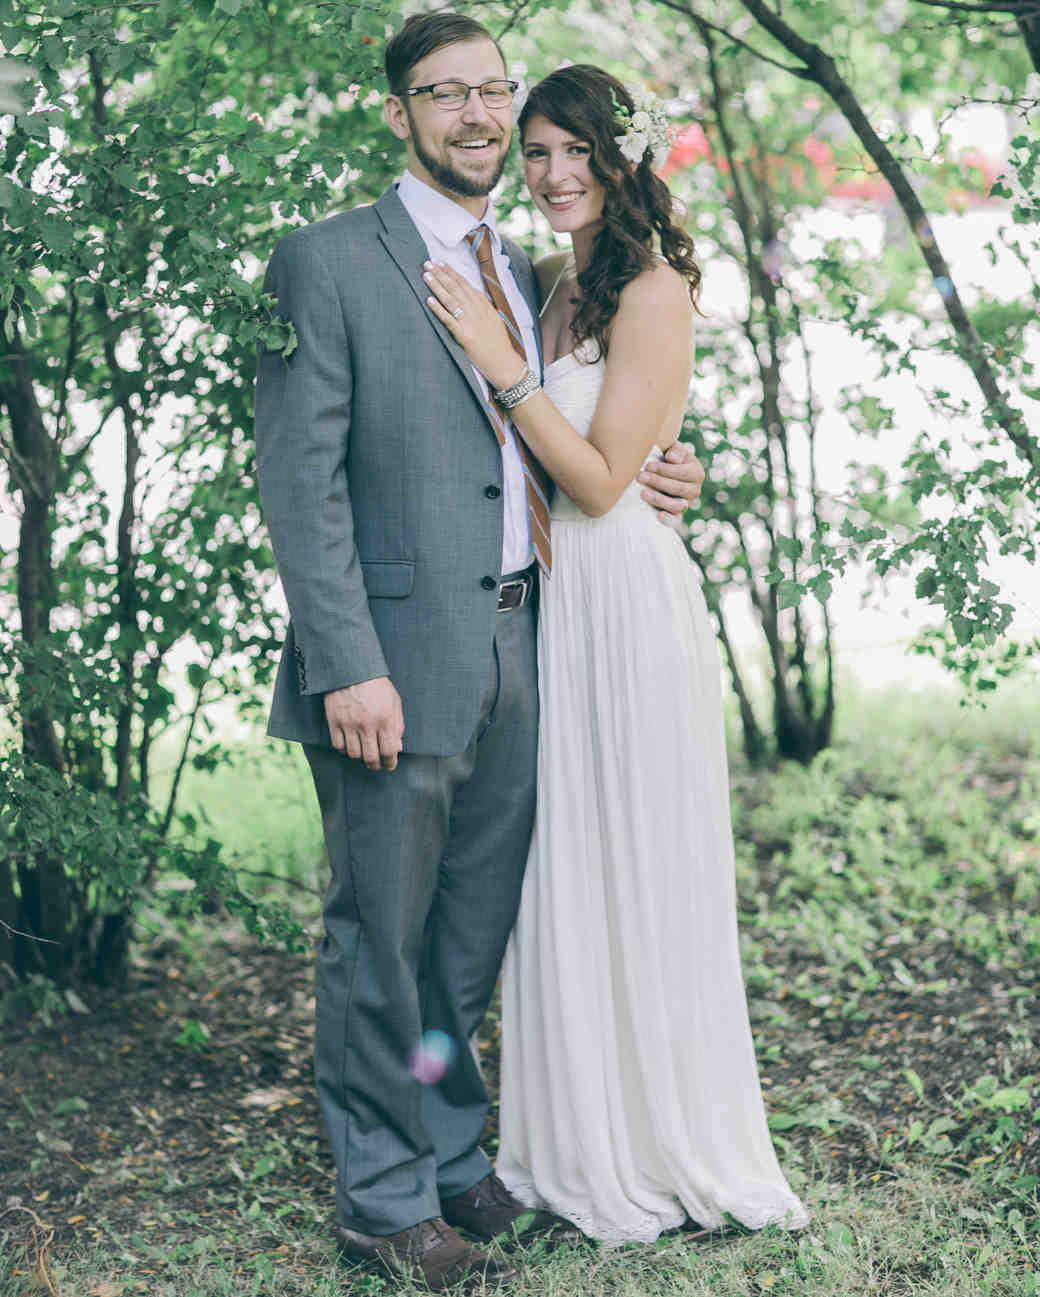 sadie-brandon-wedding-couple-252-ss112173-0915.jpg